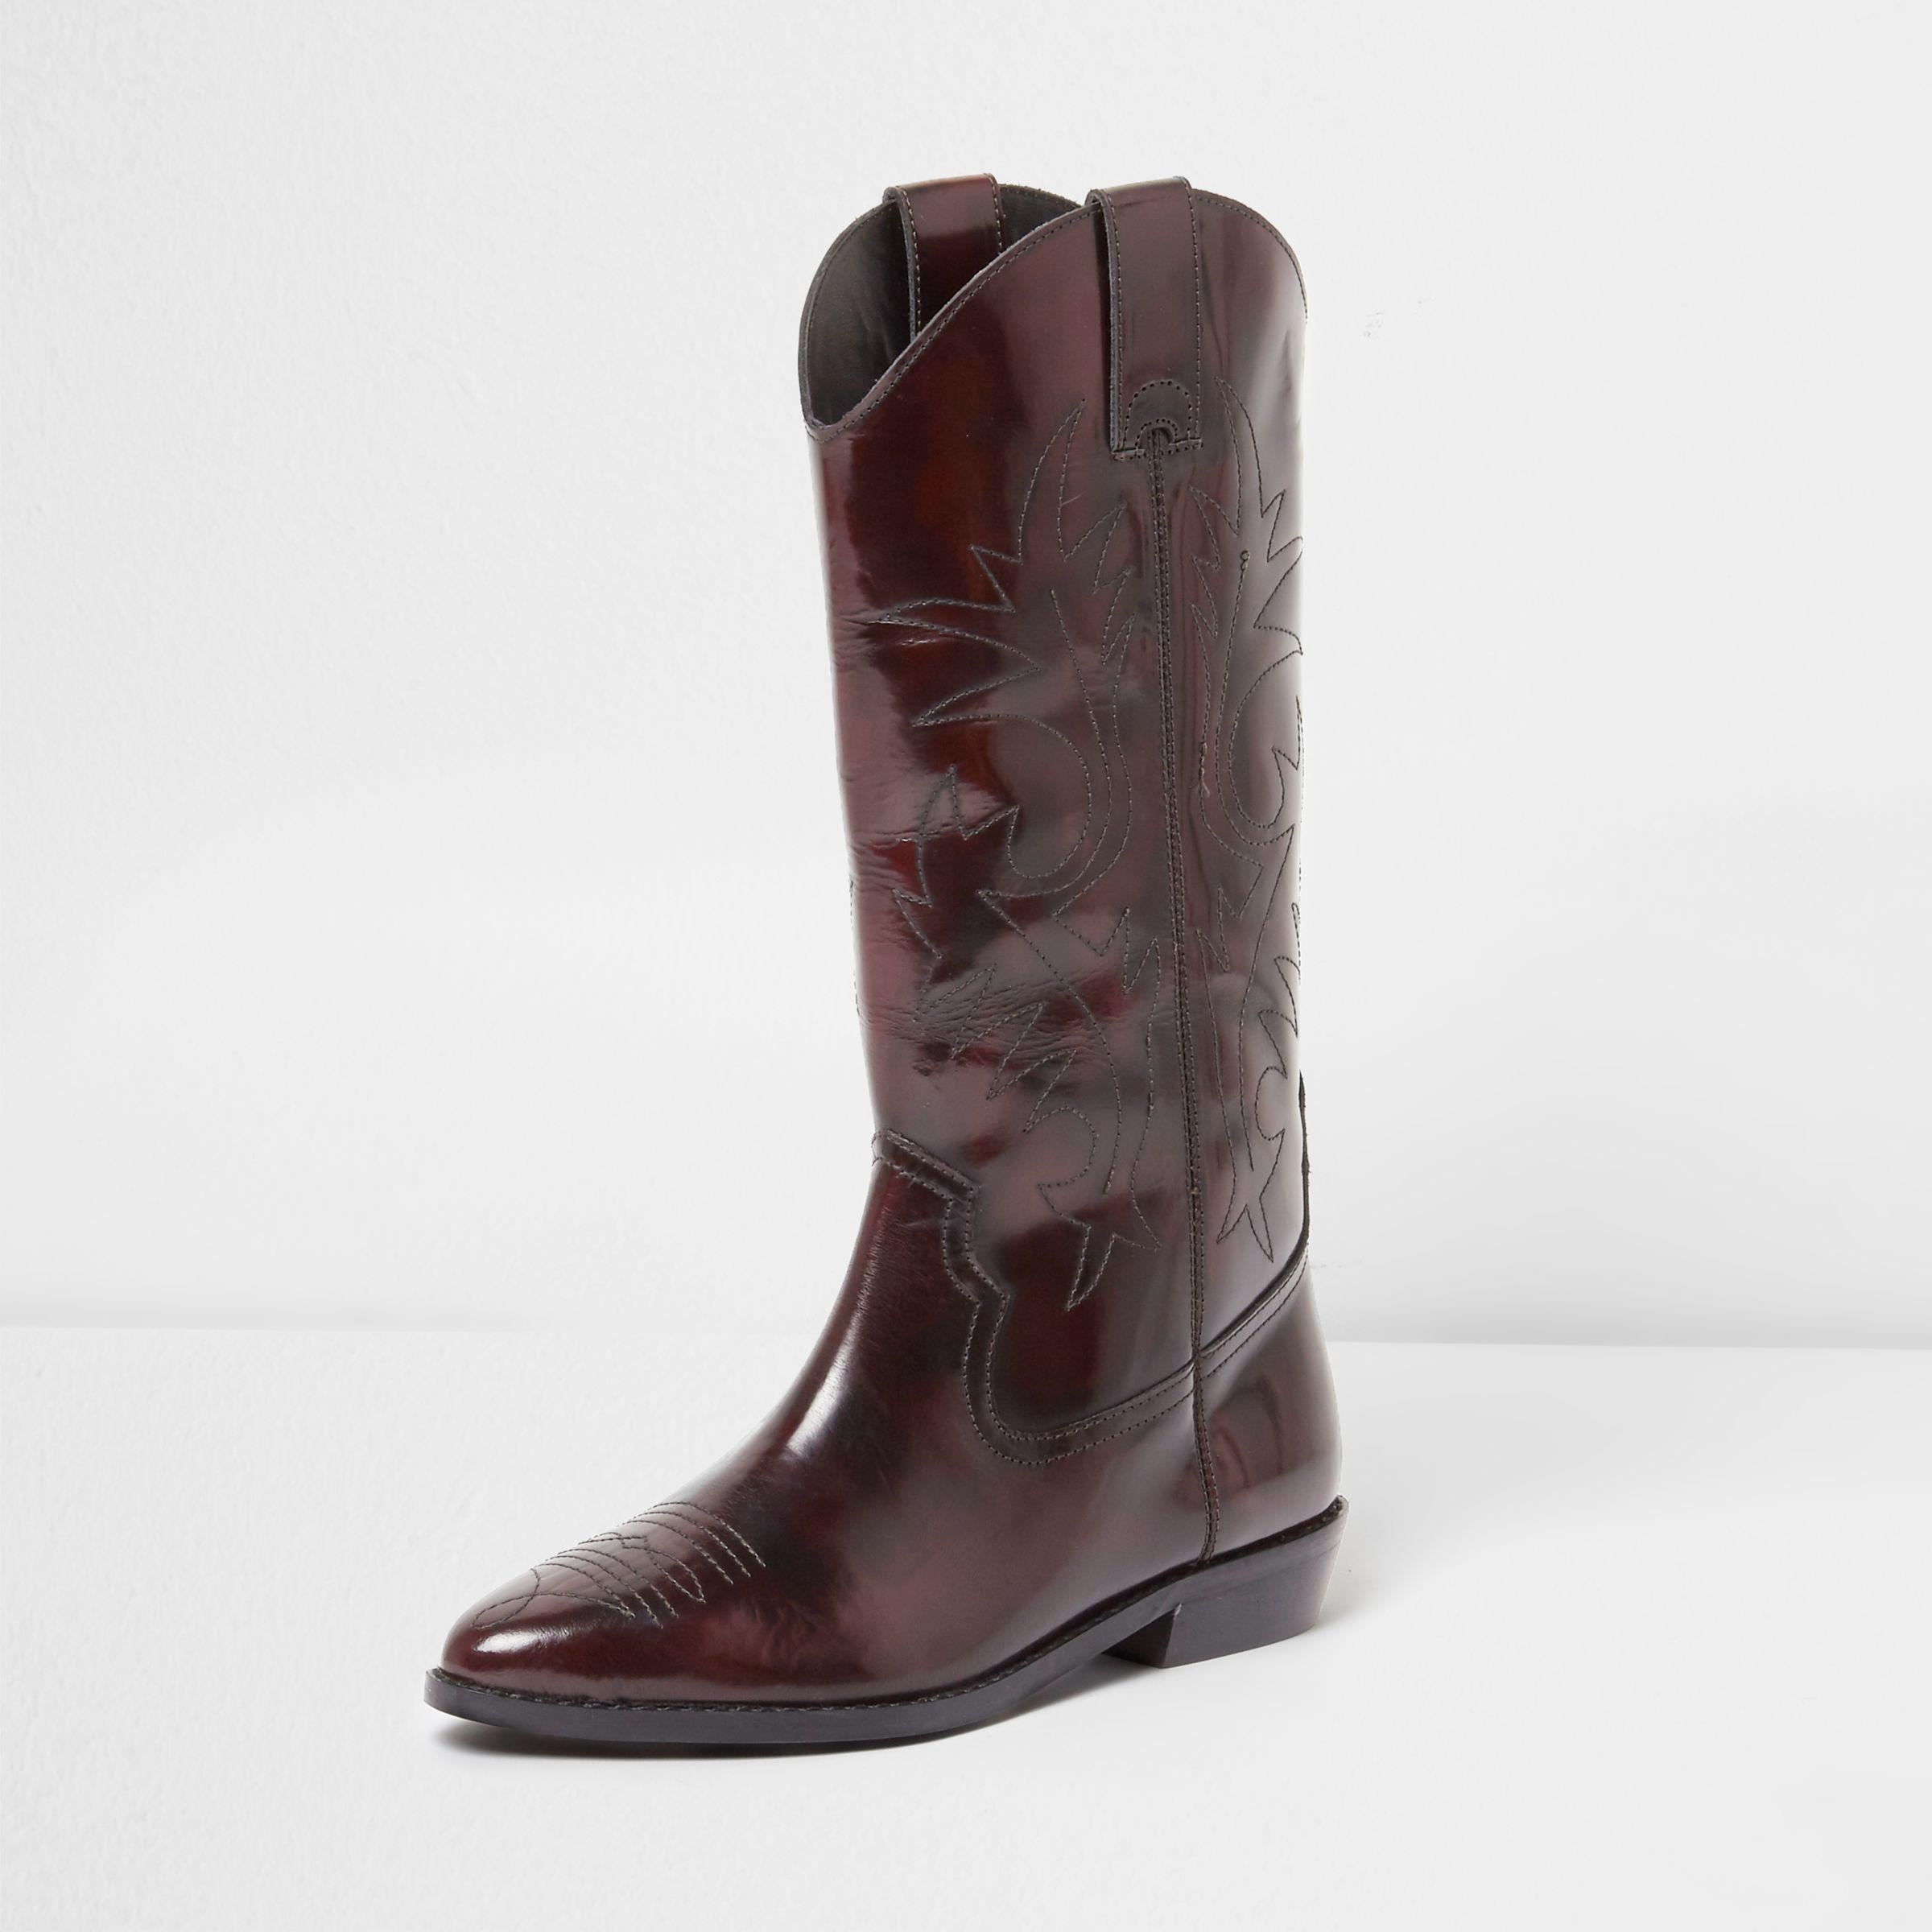 03fcf36156e Lyst - River Island Dark Patent Knee High Western Boots in Red